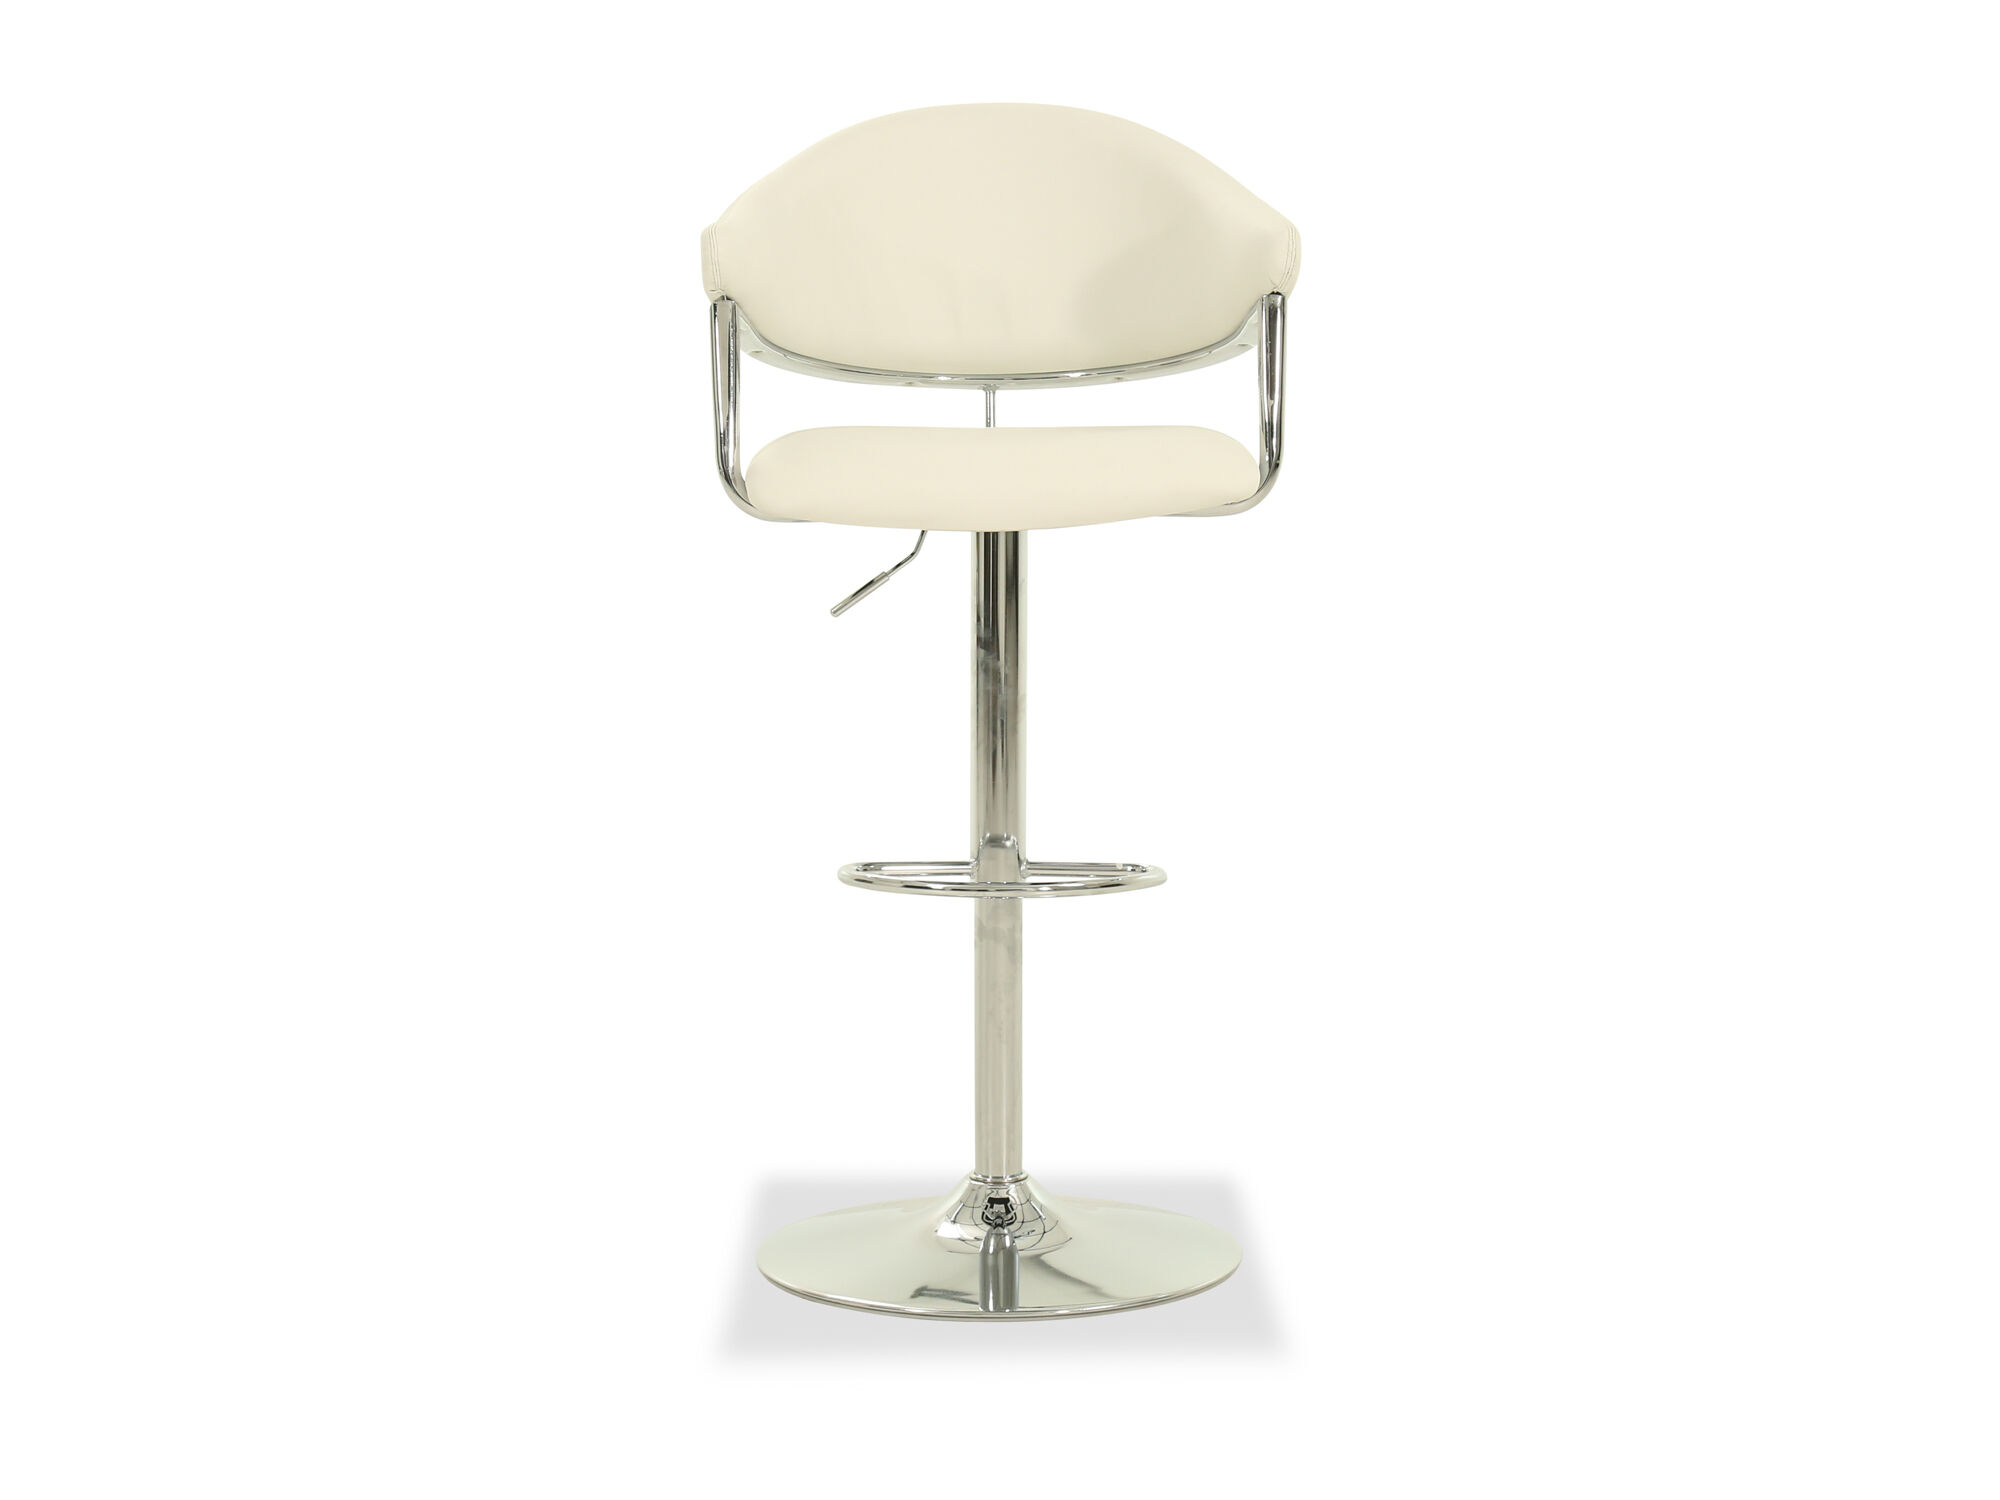 Leather Adjustable Bar Stool In White Leather Adjustable Bar Stool In White